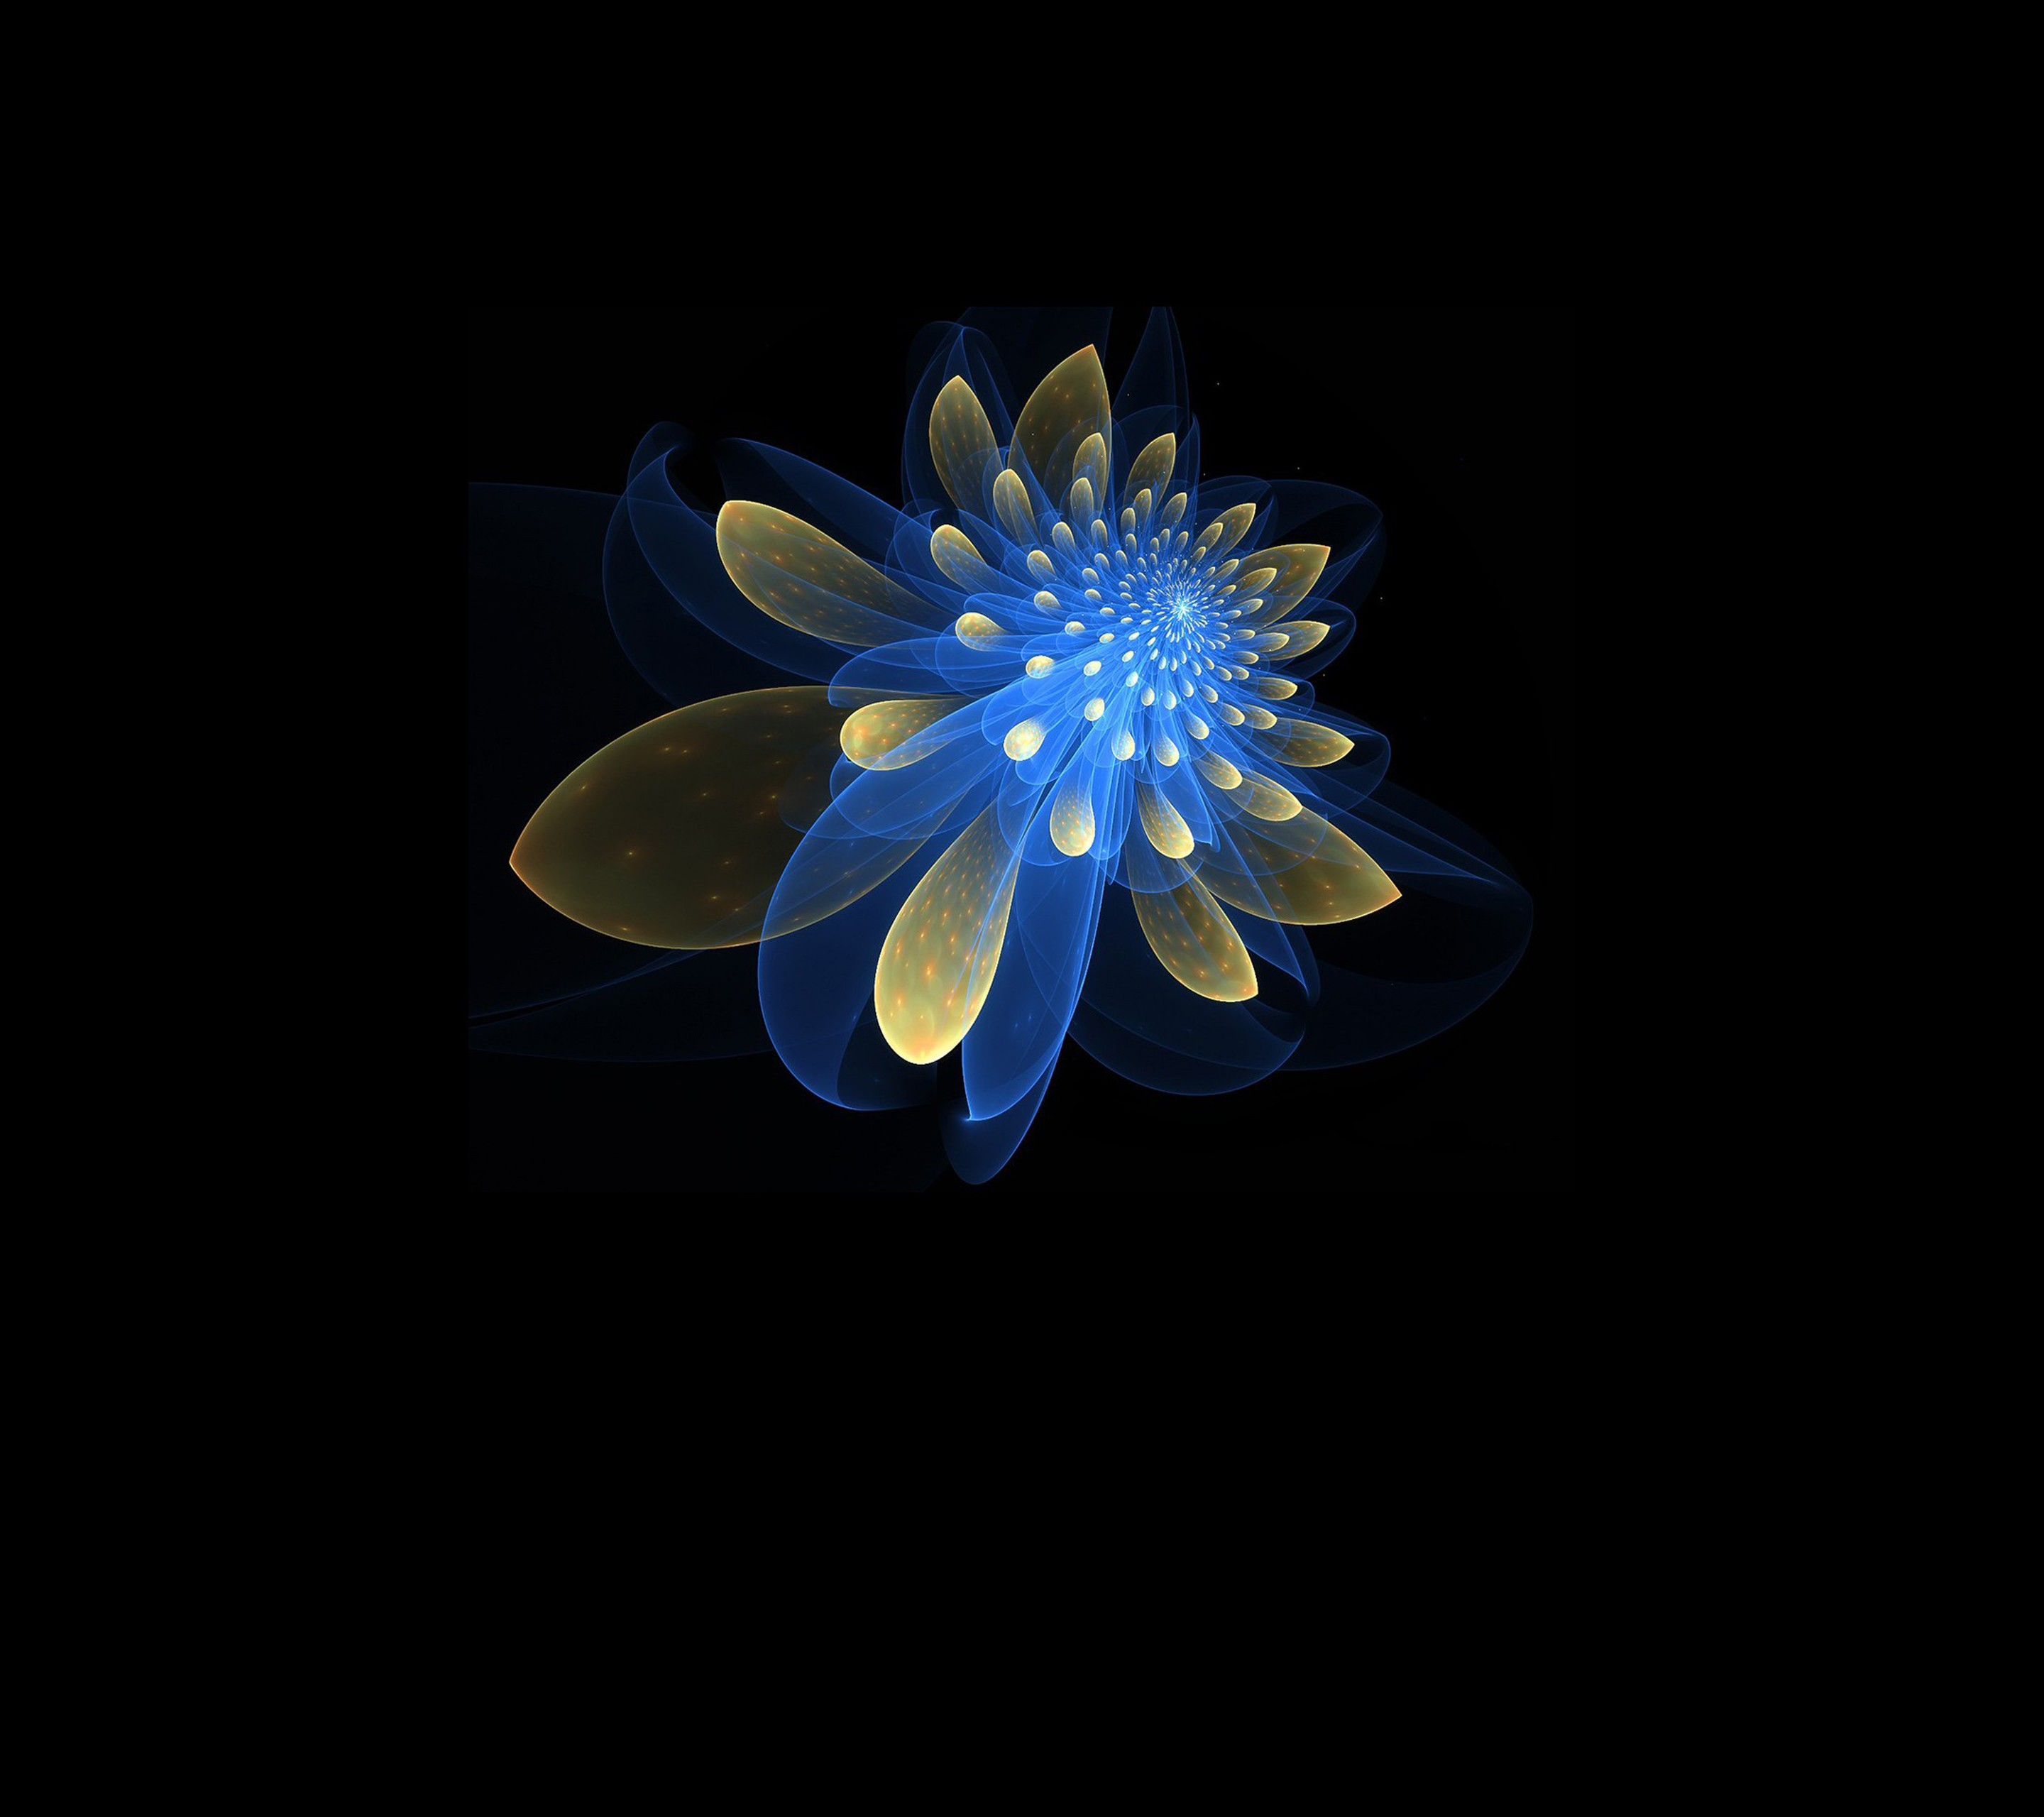 Huawei Honor Note 8 Stock Wallpapers: Huawei Honor Note 8 Wallpapers 4